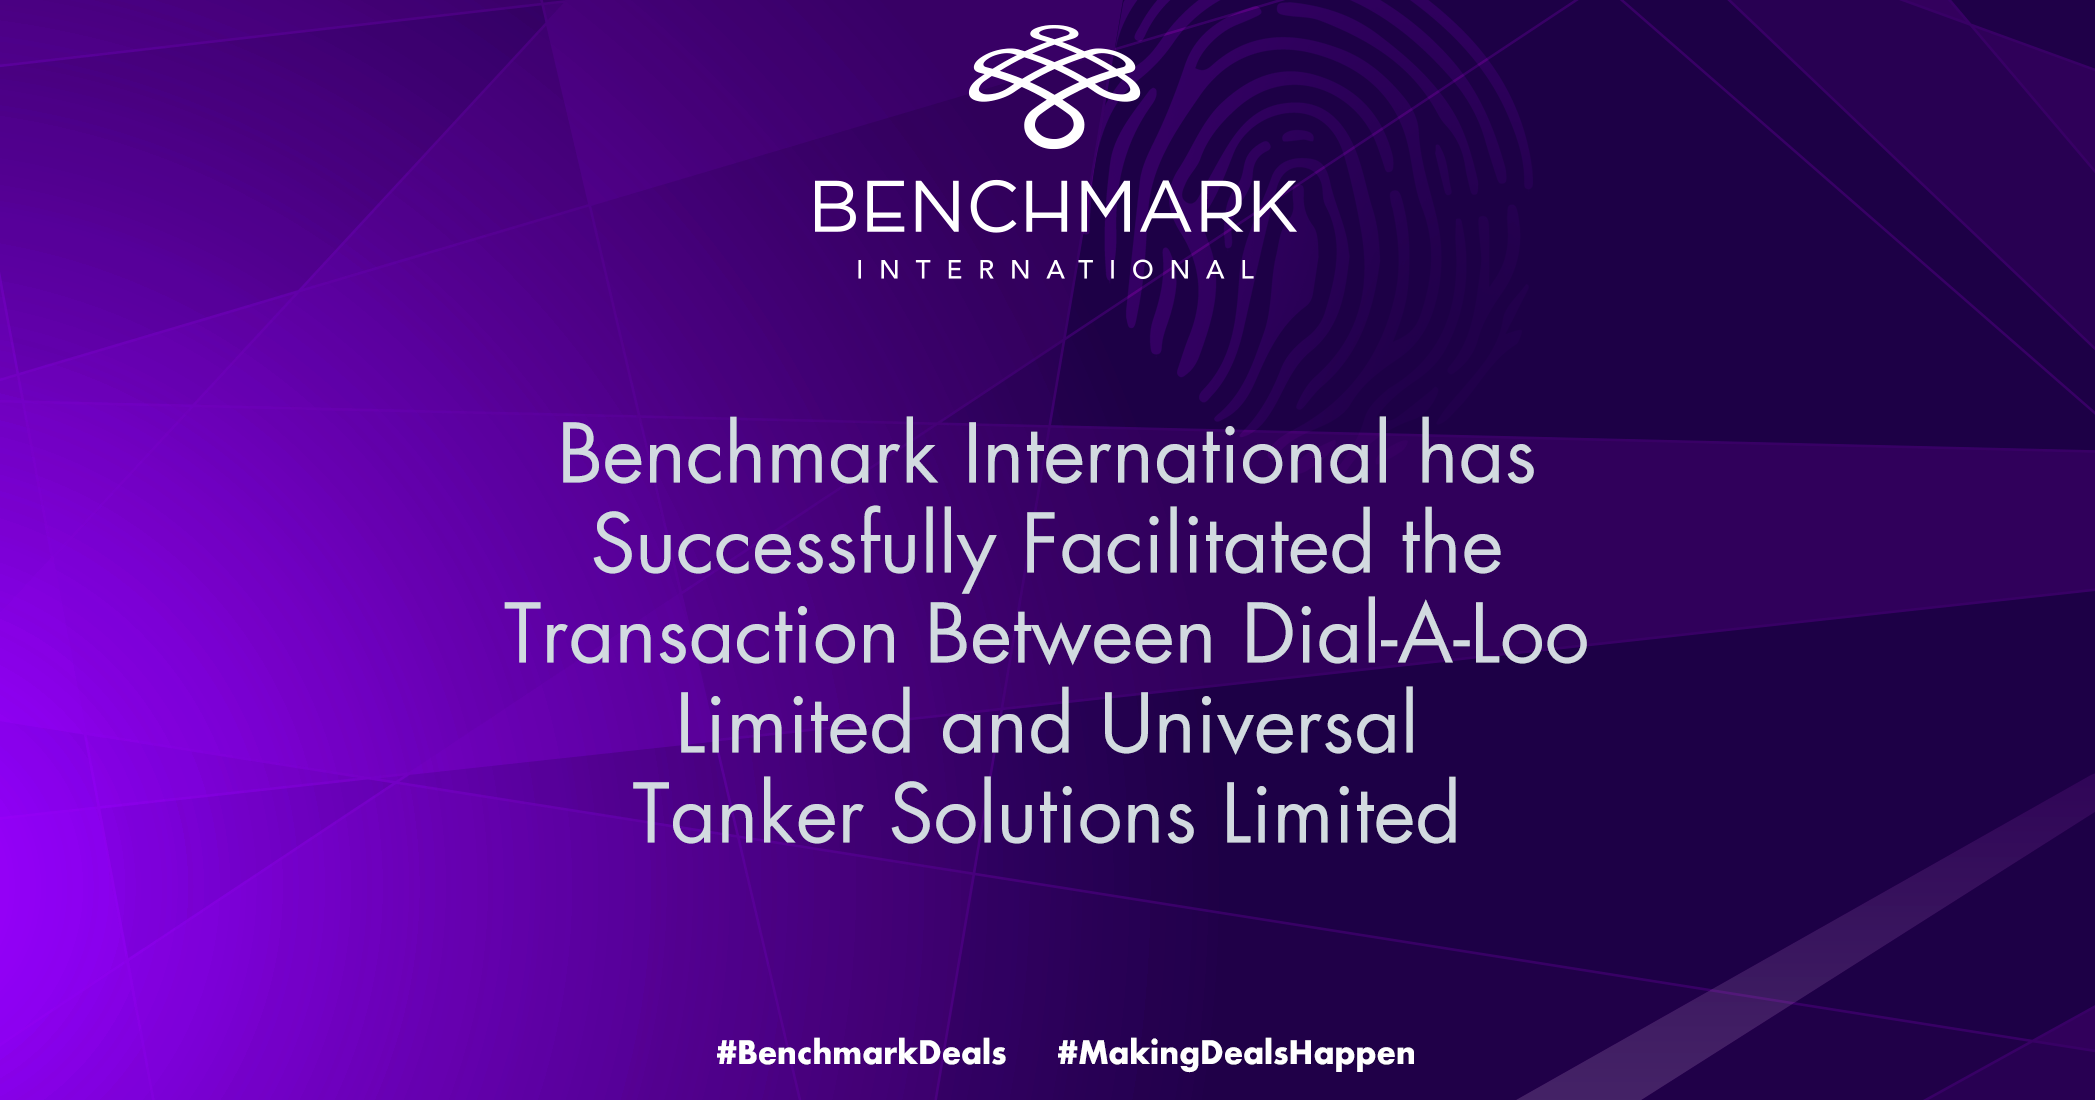 Benchmark International has Successfully Facilitated the Transaction Between Dial-A-Loo Limited and Universal Tanker Solutions Limited